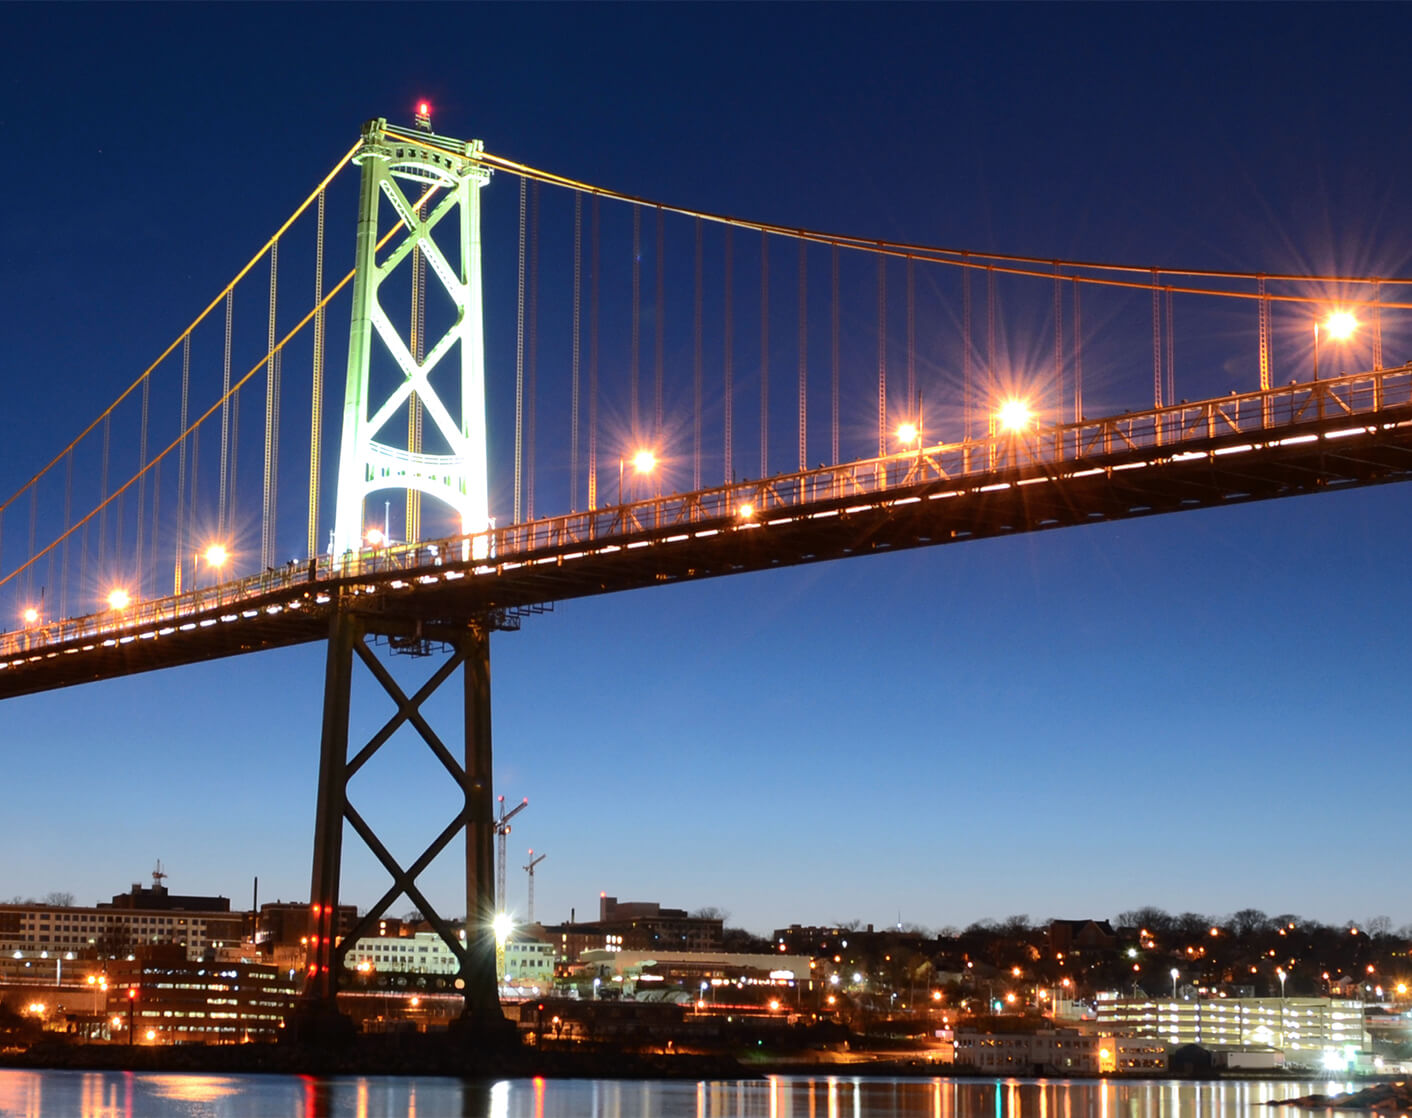 image of a bridge between Dartmouth and Halifax Nova Scotia